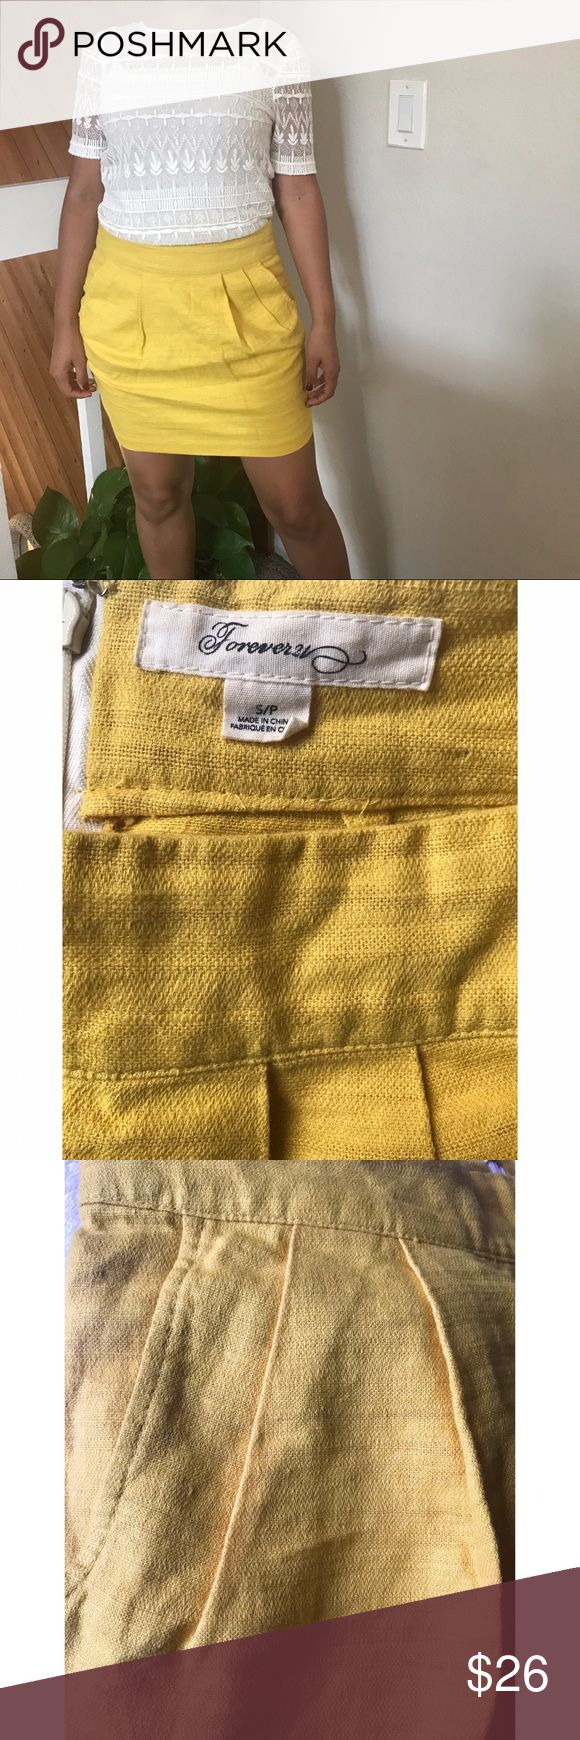 Mustard Yellow Linen Mini Skirt Mustard Yellow Linen Mini Skirt. Worn once. Perfect condition. **The first 2 stock photos are for inspiration showing a very similar skirt. Actual skirt are shown in the last 5 pictures. Forever 21 Skirts Mini